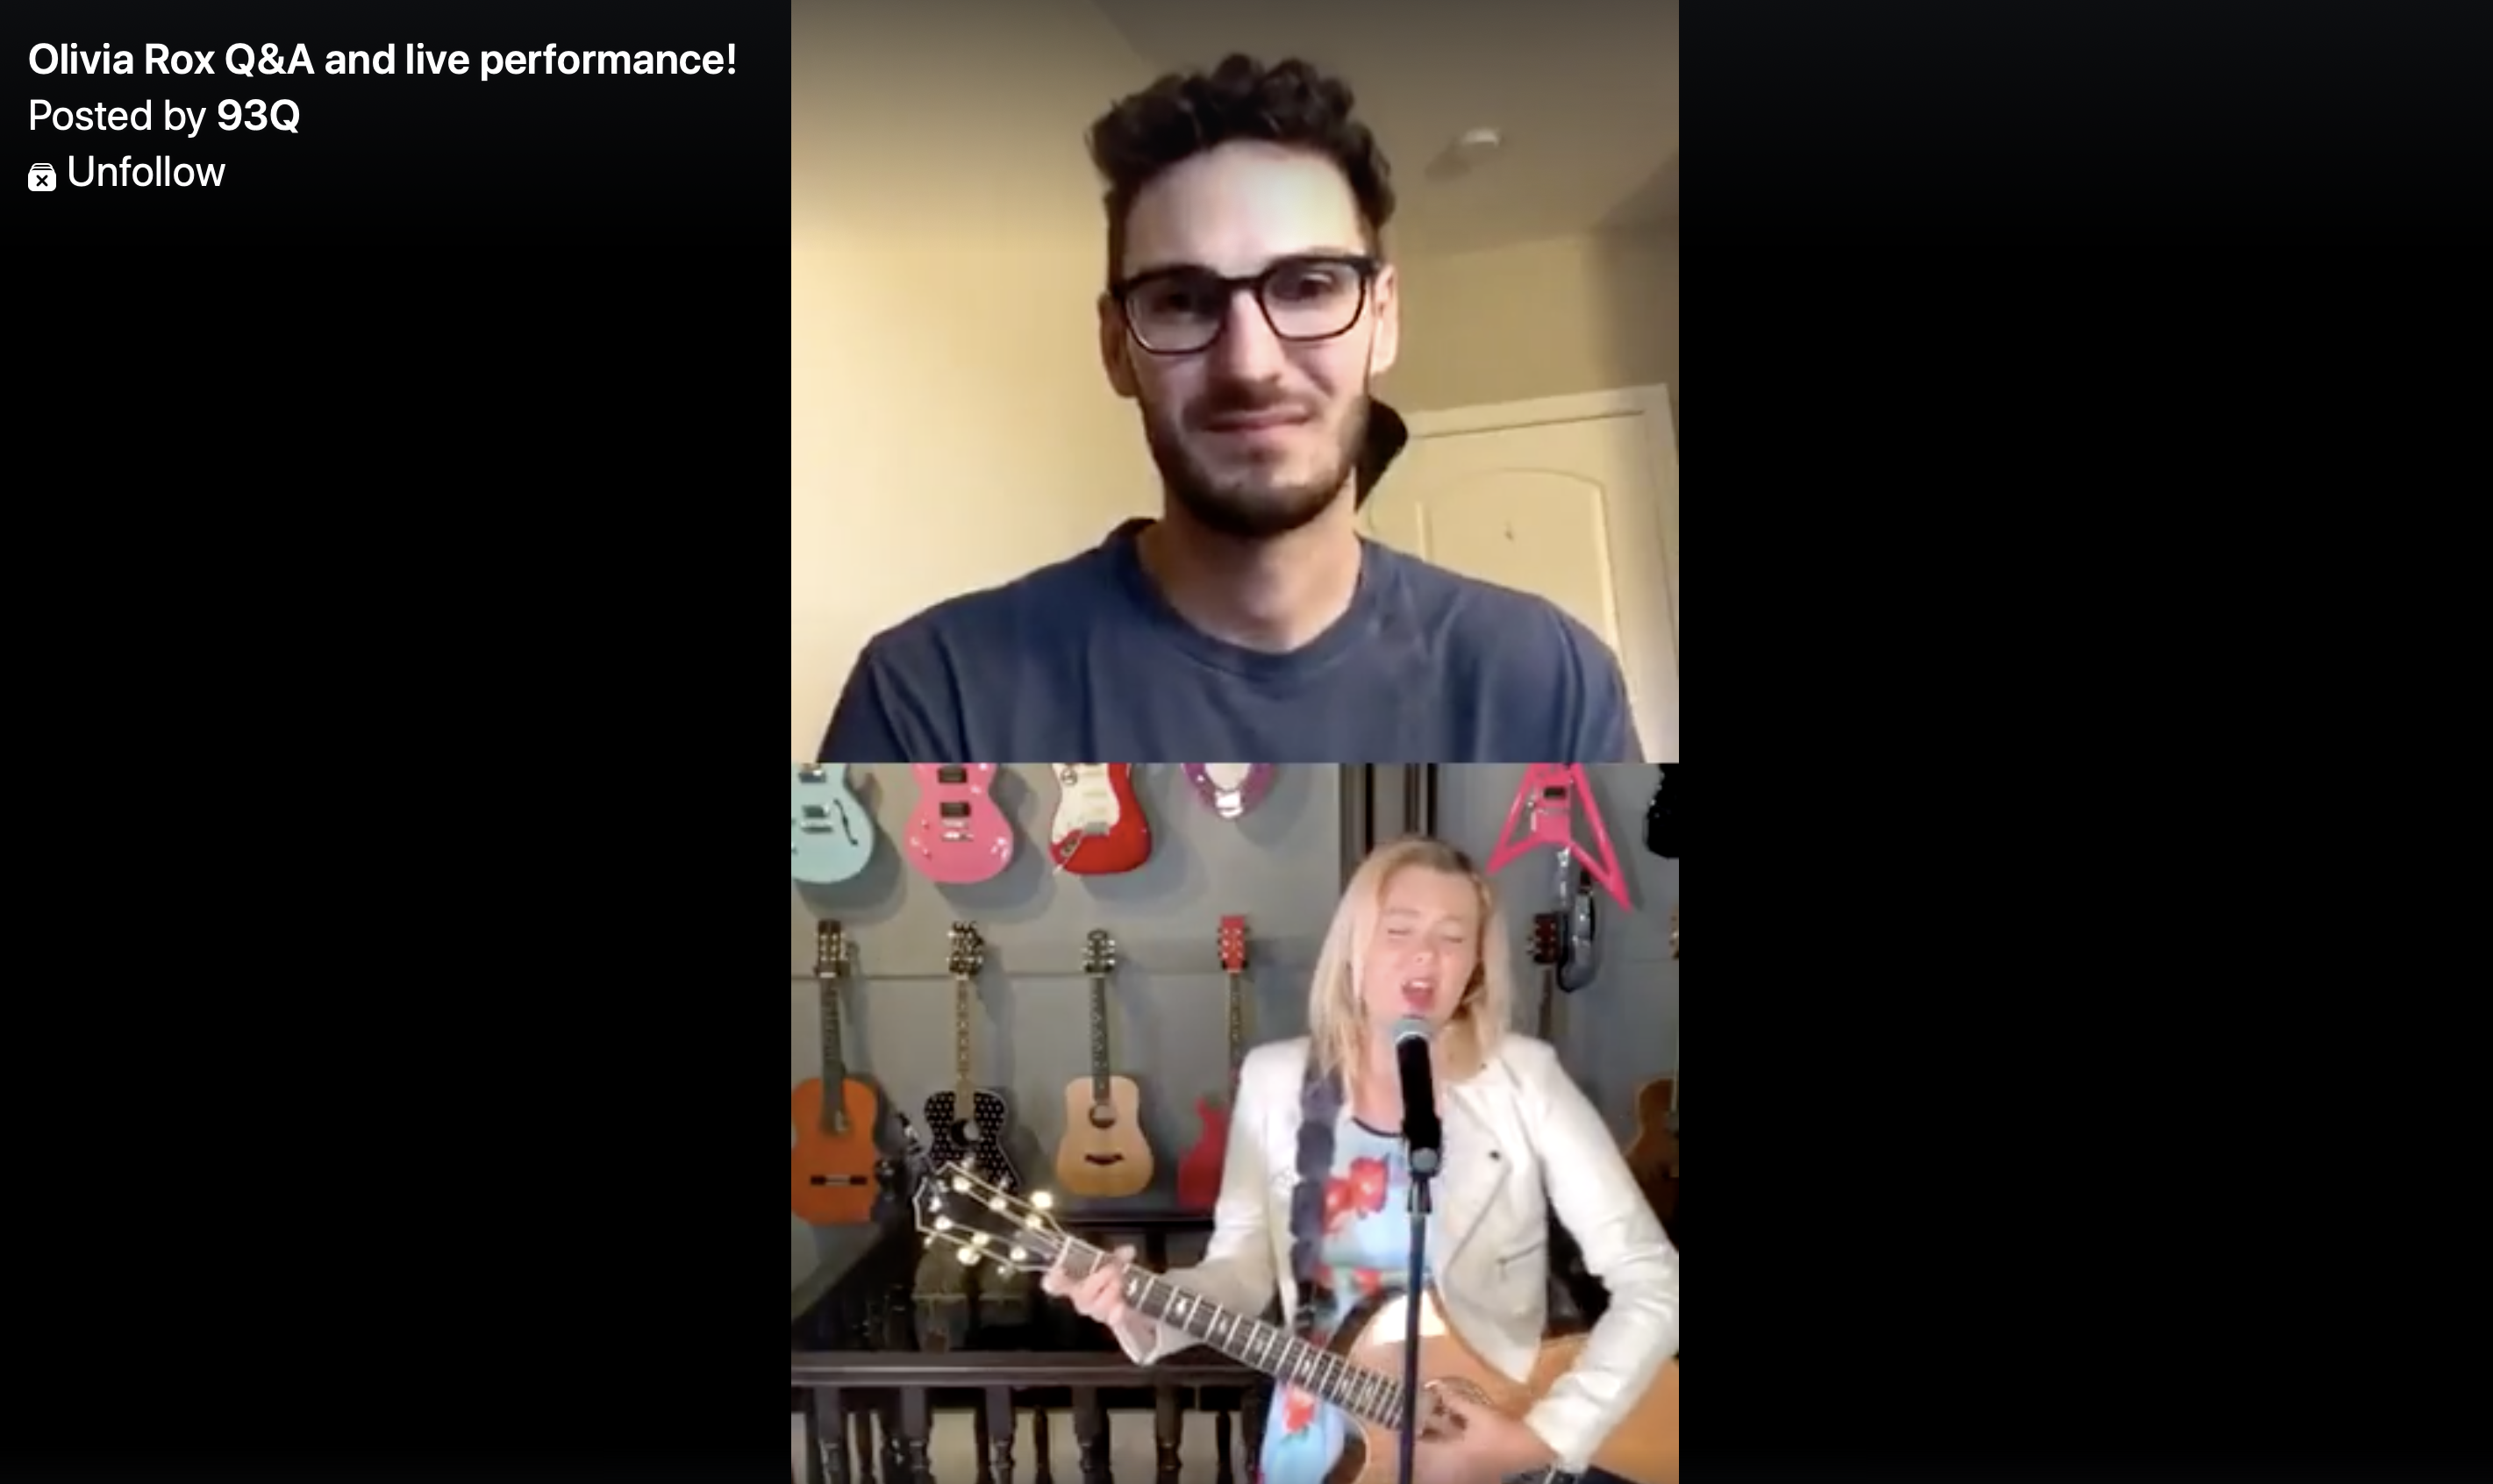 [WATCH] Olivia Rox joins 93Q live on Instagram for Q&A/performance